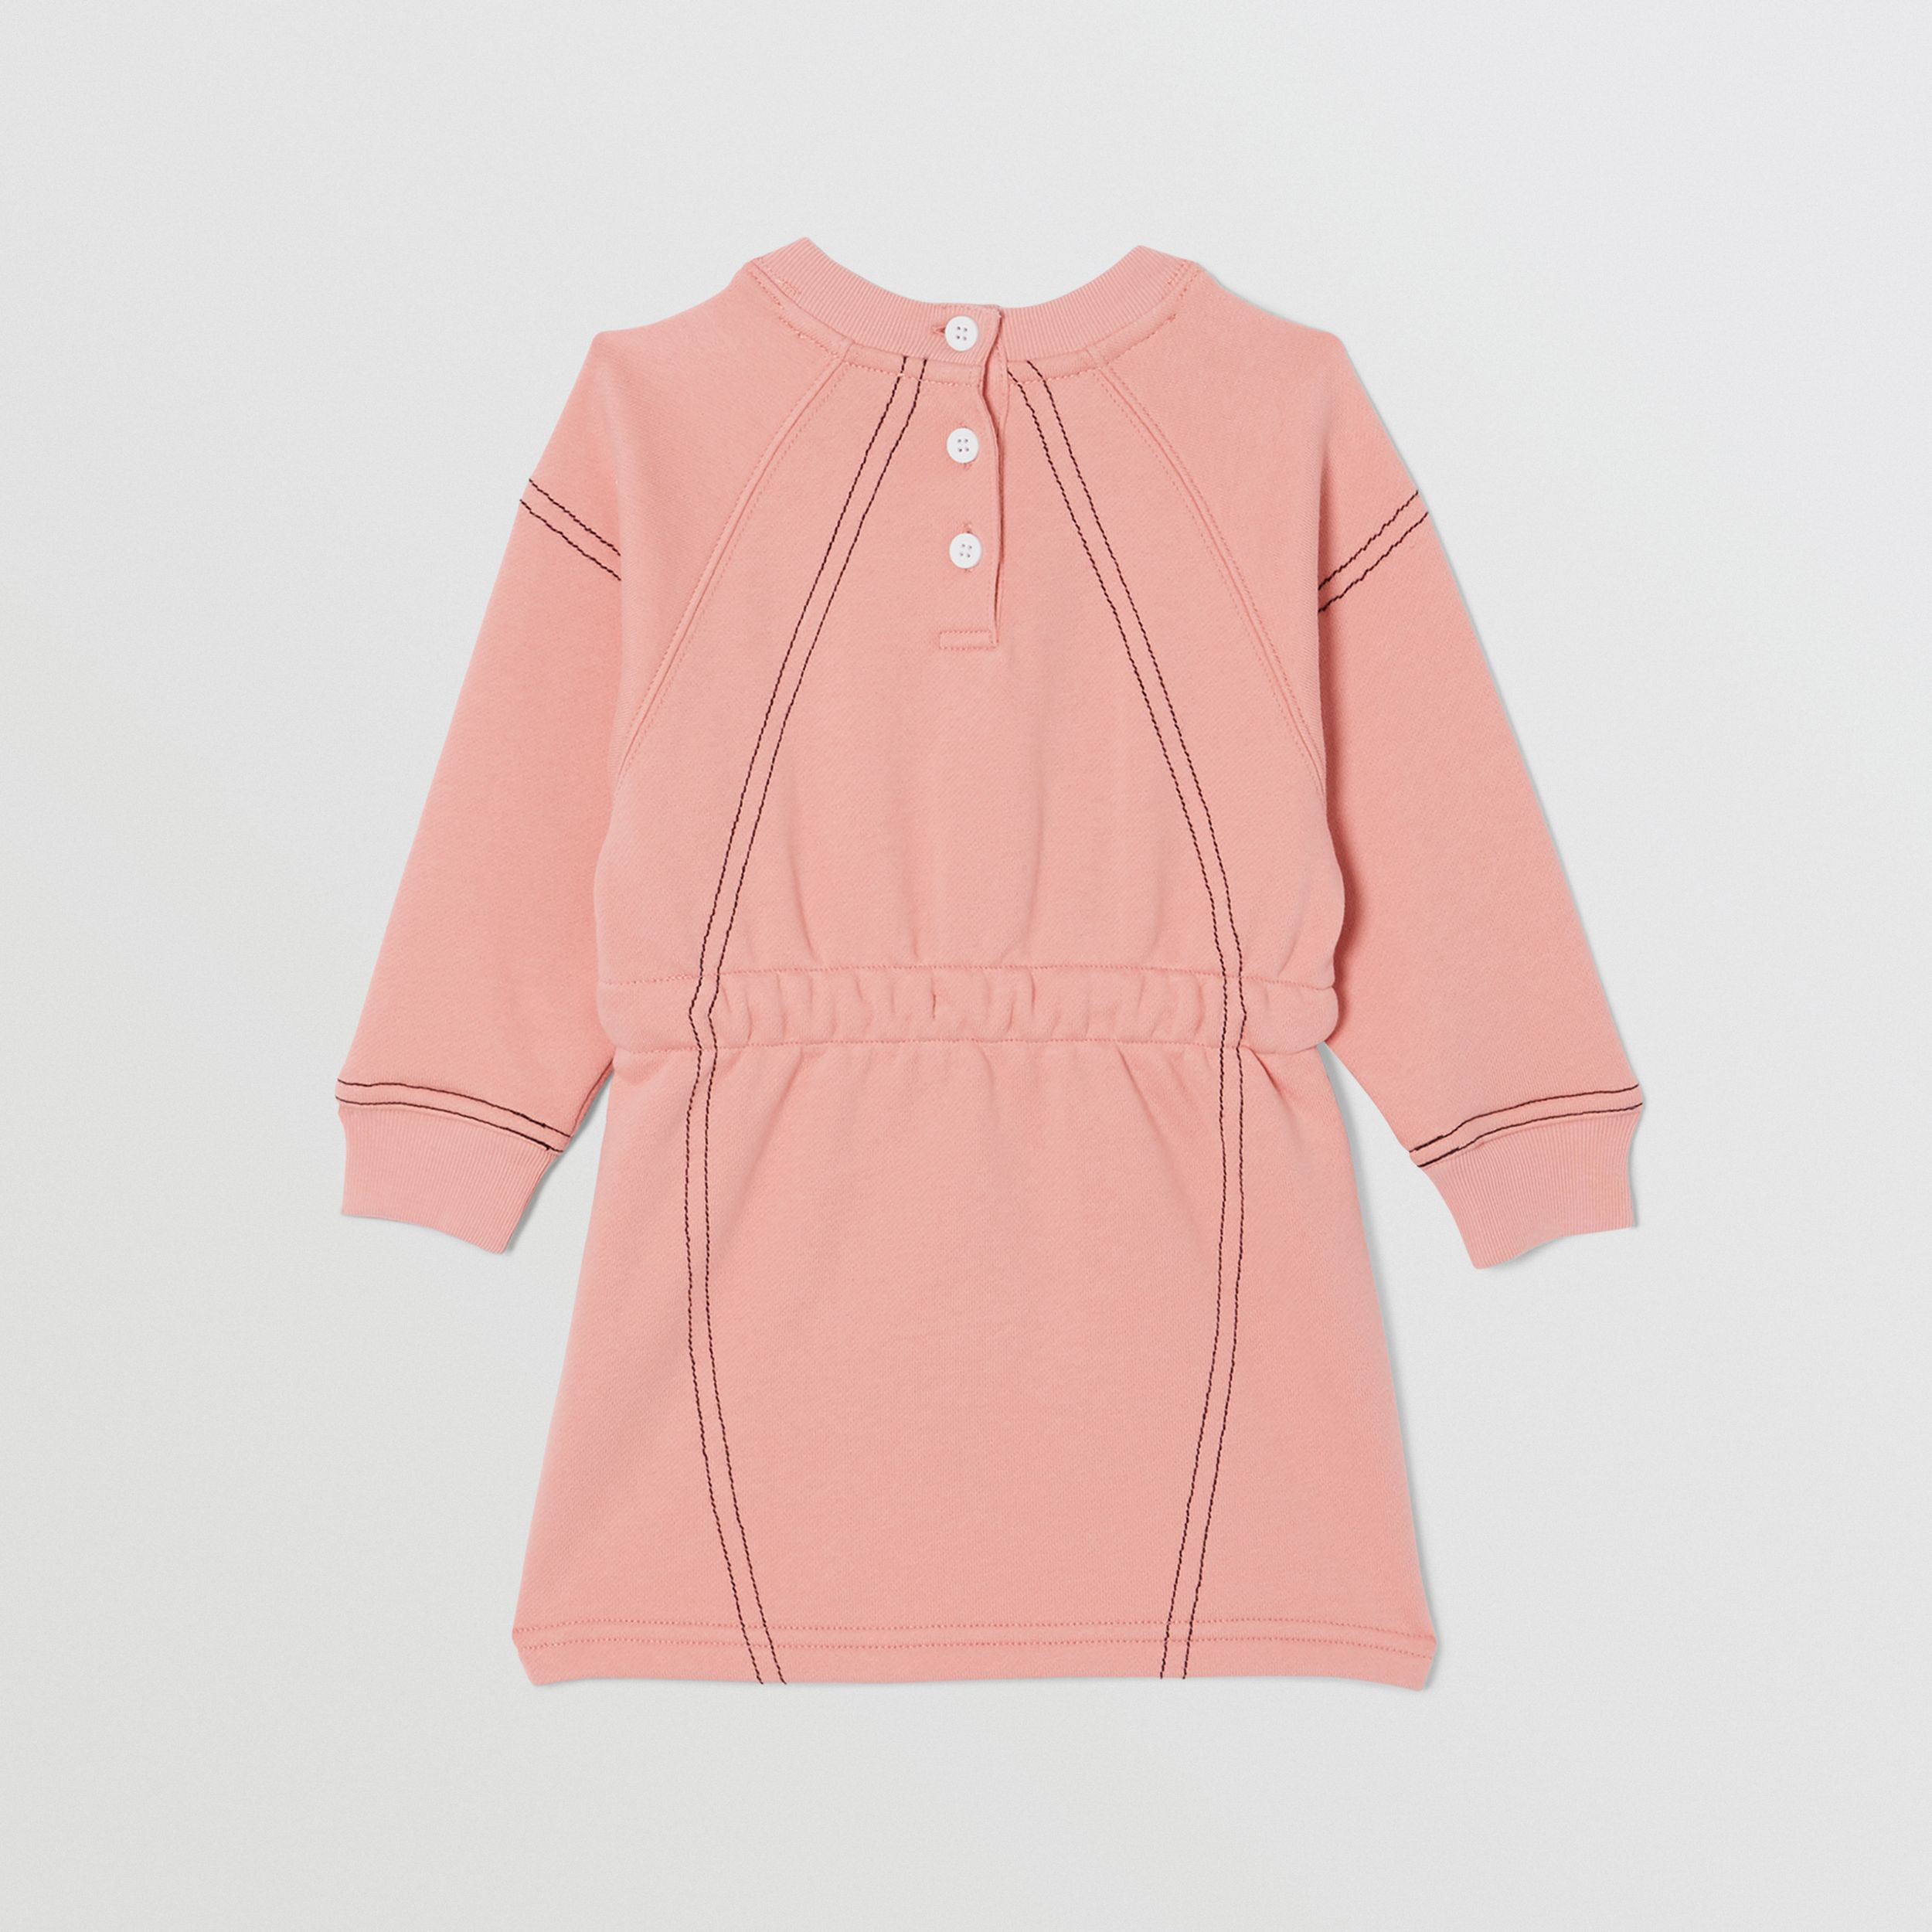 Logo Print Cotton Sweater Dress in Peach - Children | Burberry - 4